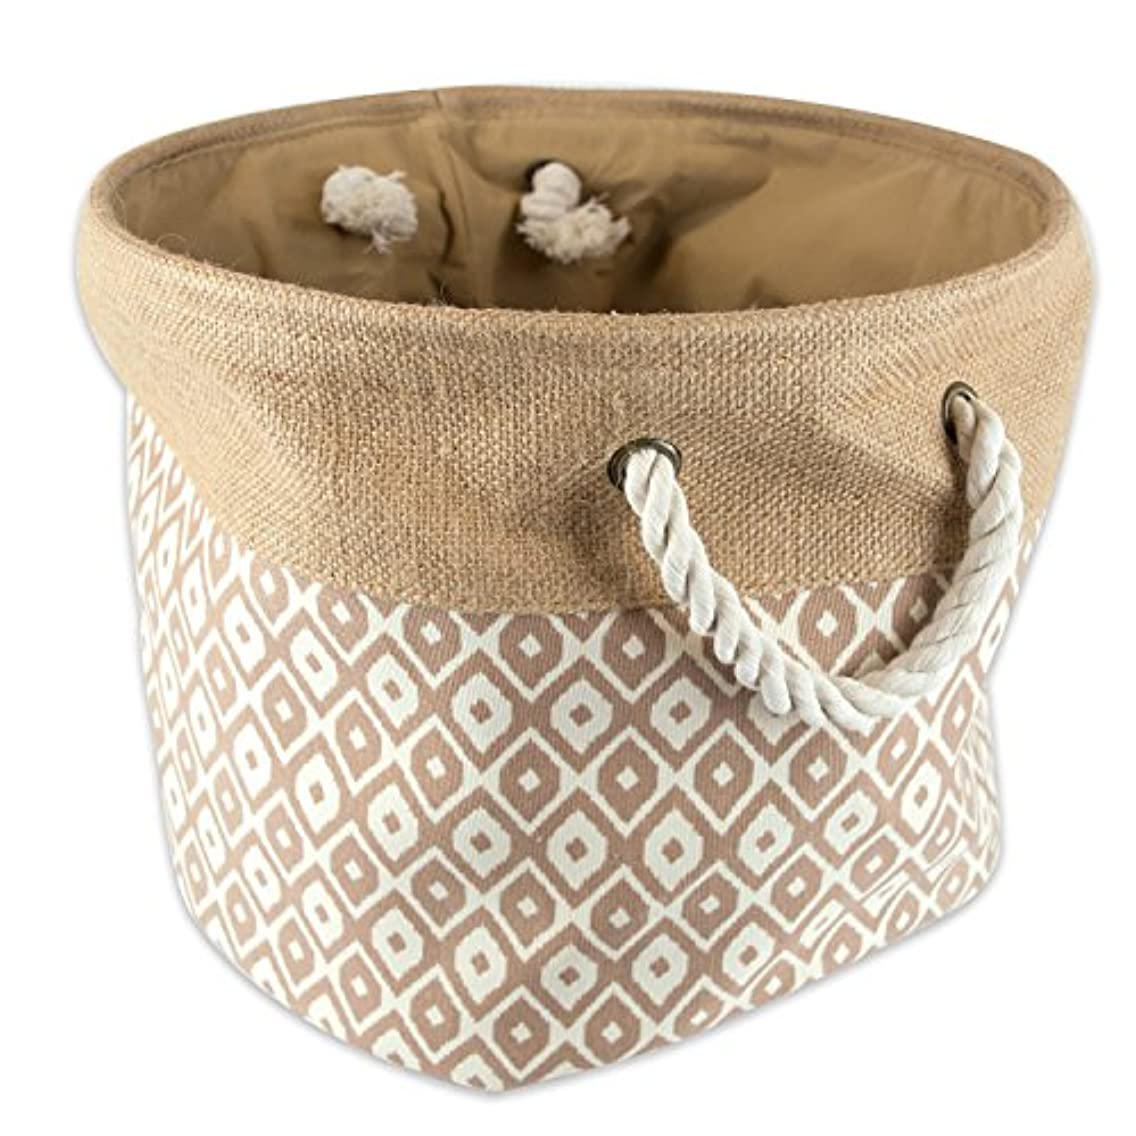 DII Collapsible Burlap Storage Basket or Bin with Durable Cotton Handles, Home Organizational Solution for Office, Bedroom, Closet, Toys, & Laundry (Medium Round - 15x12